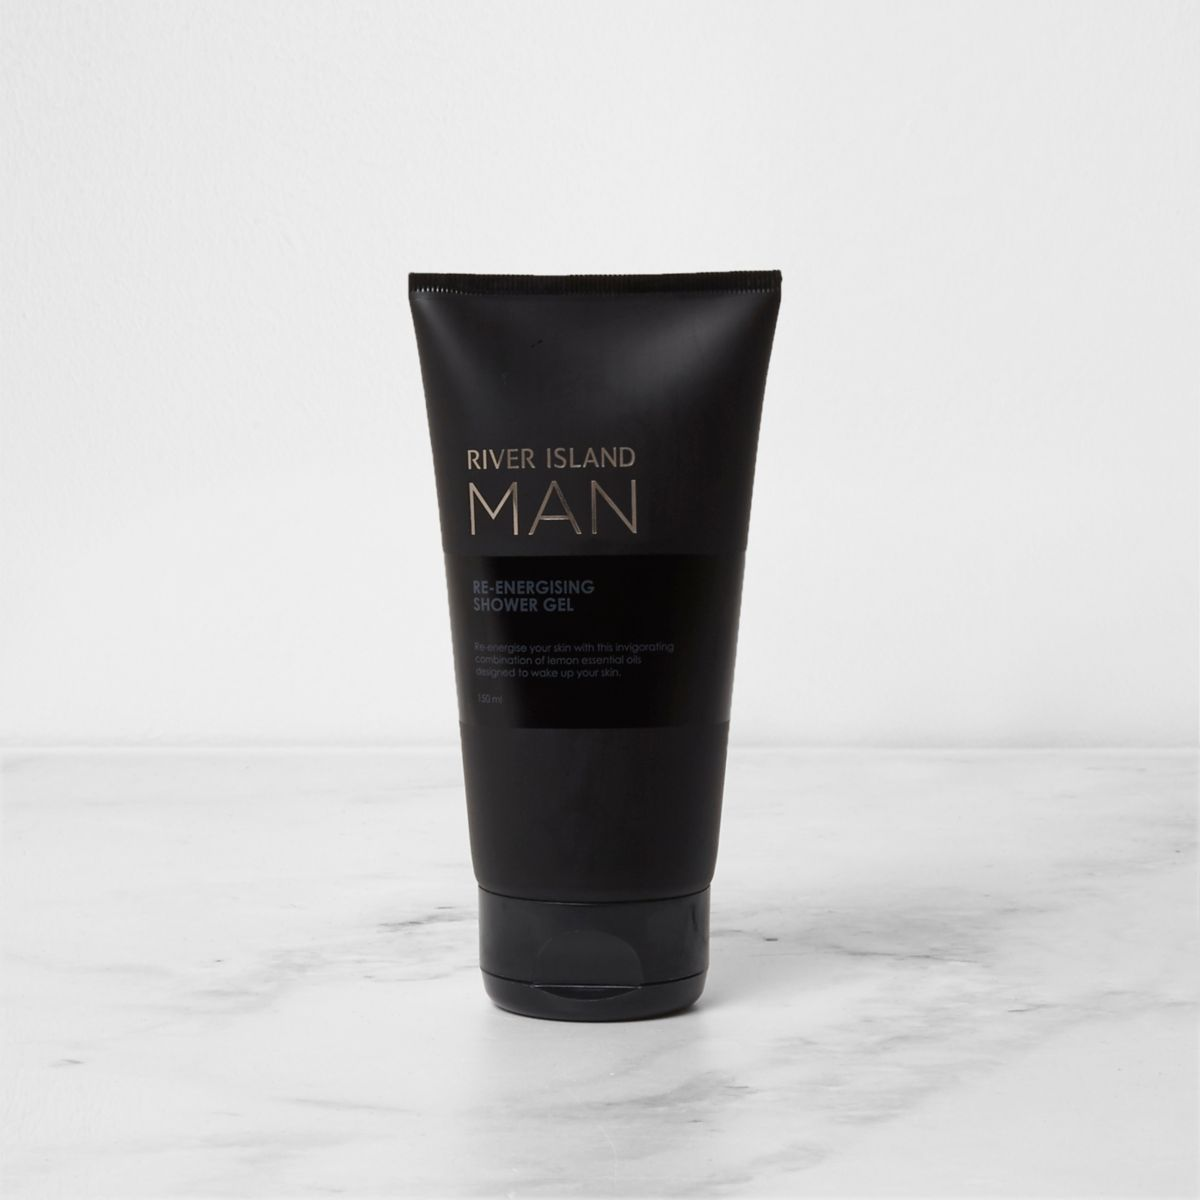 River Island Man re-energising shower gel